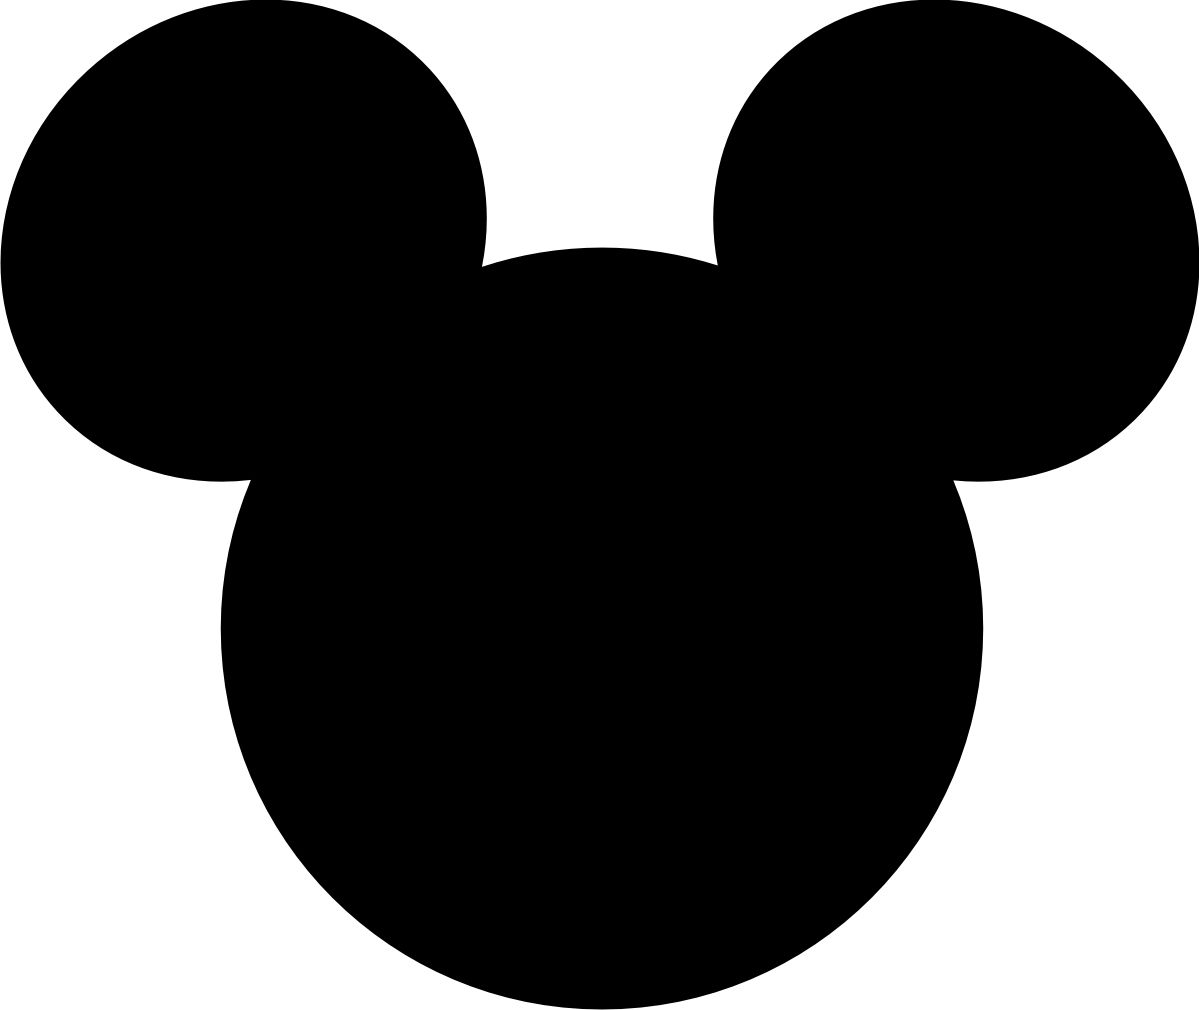 Clip Art Mickey Mouse Head Clipart 1000 ideas about mickey mouse head on pinterest bottle cap necklace and appliques